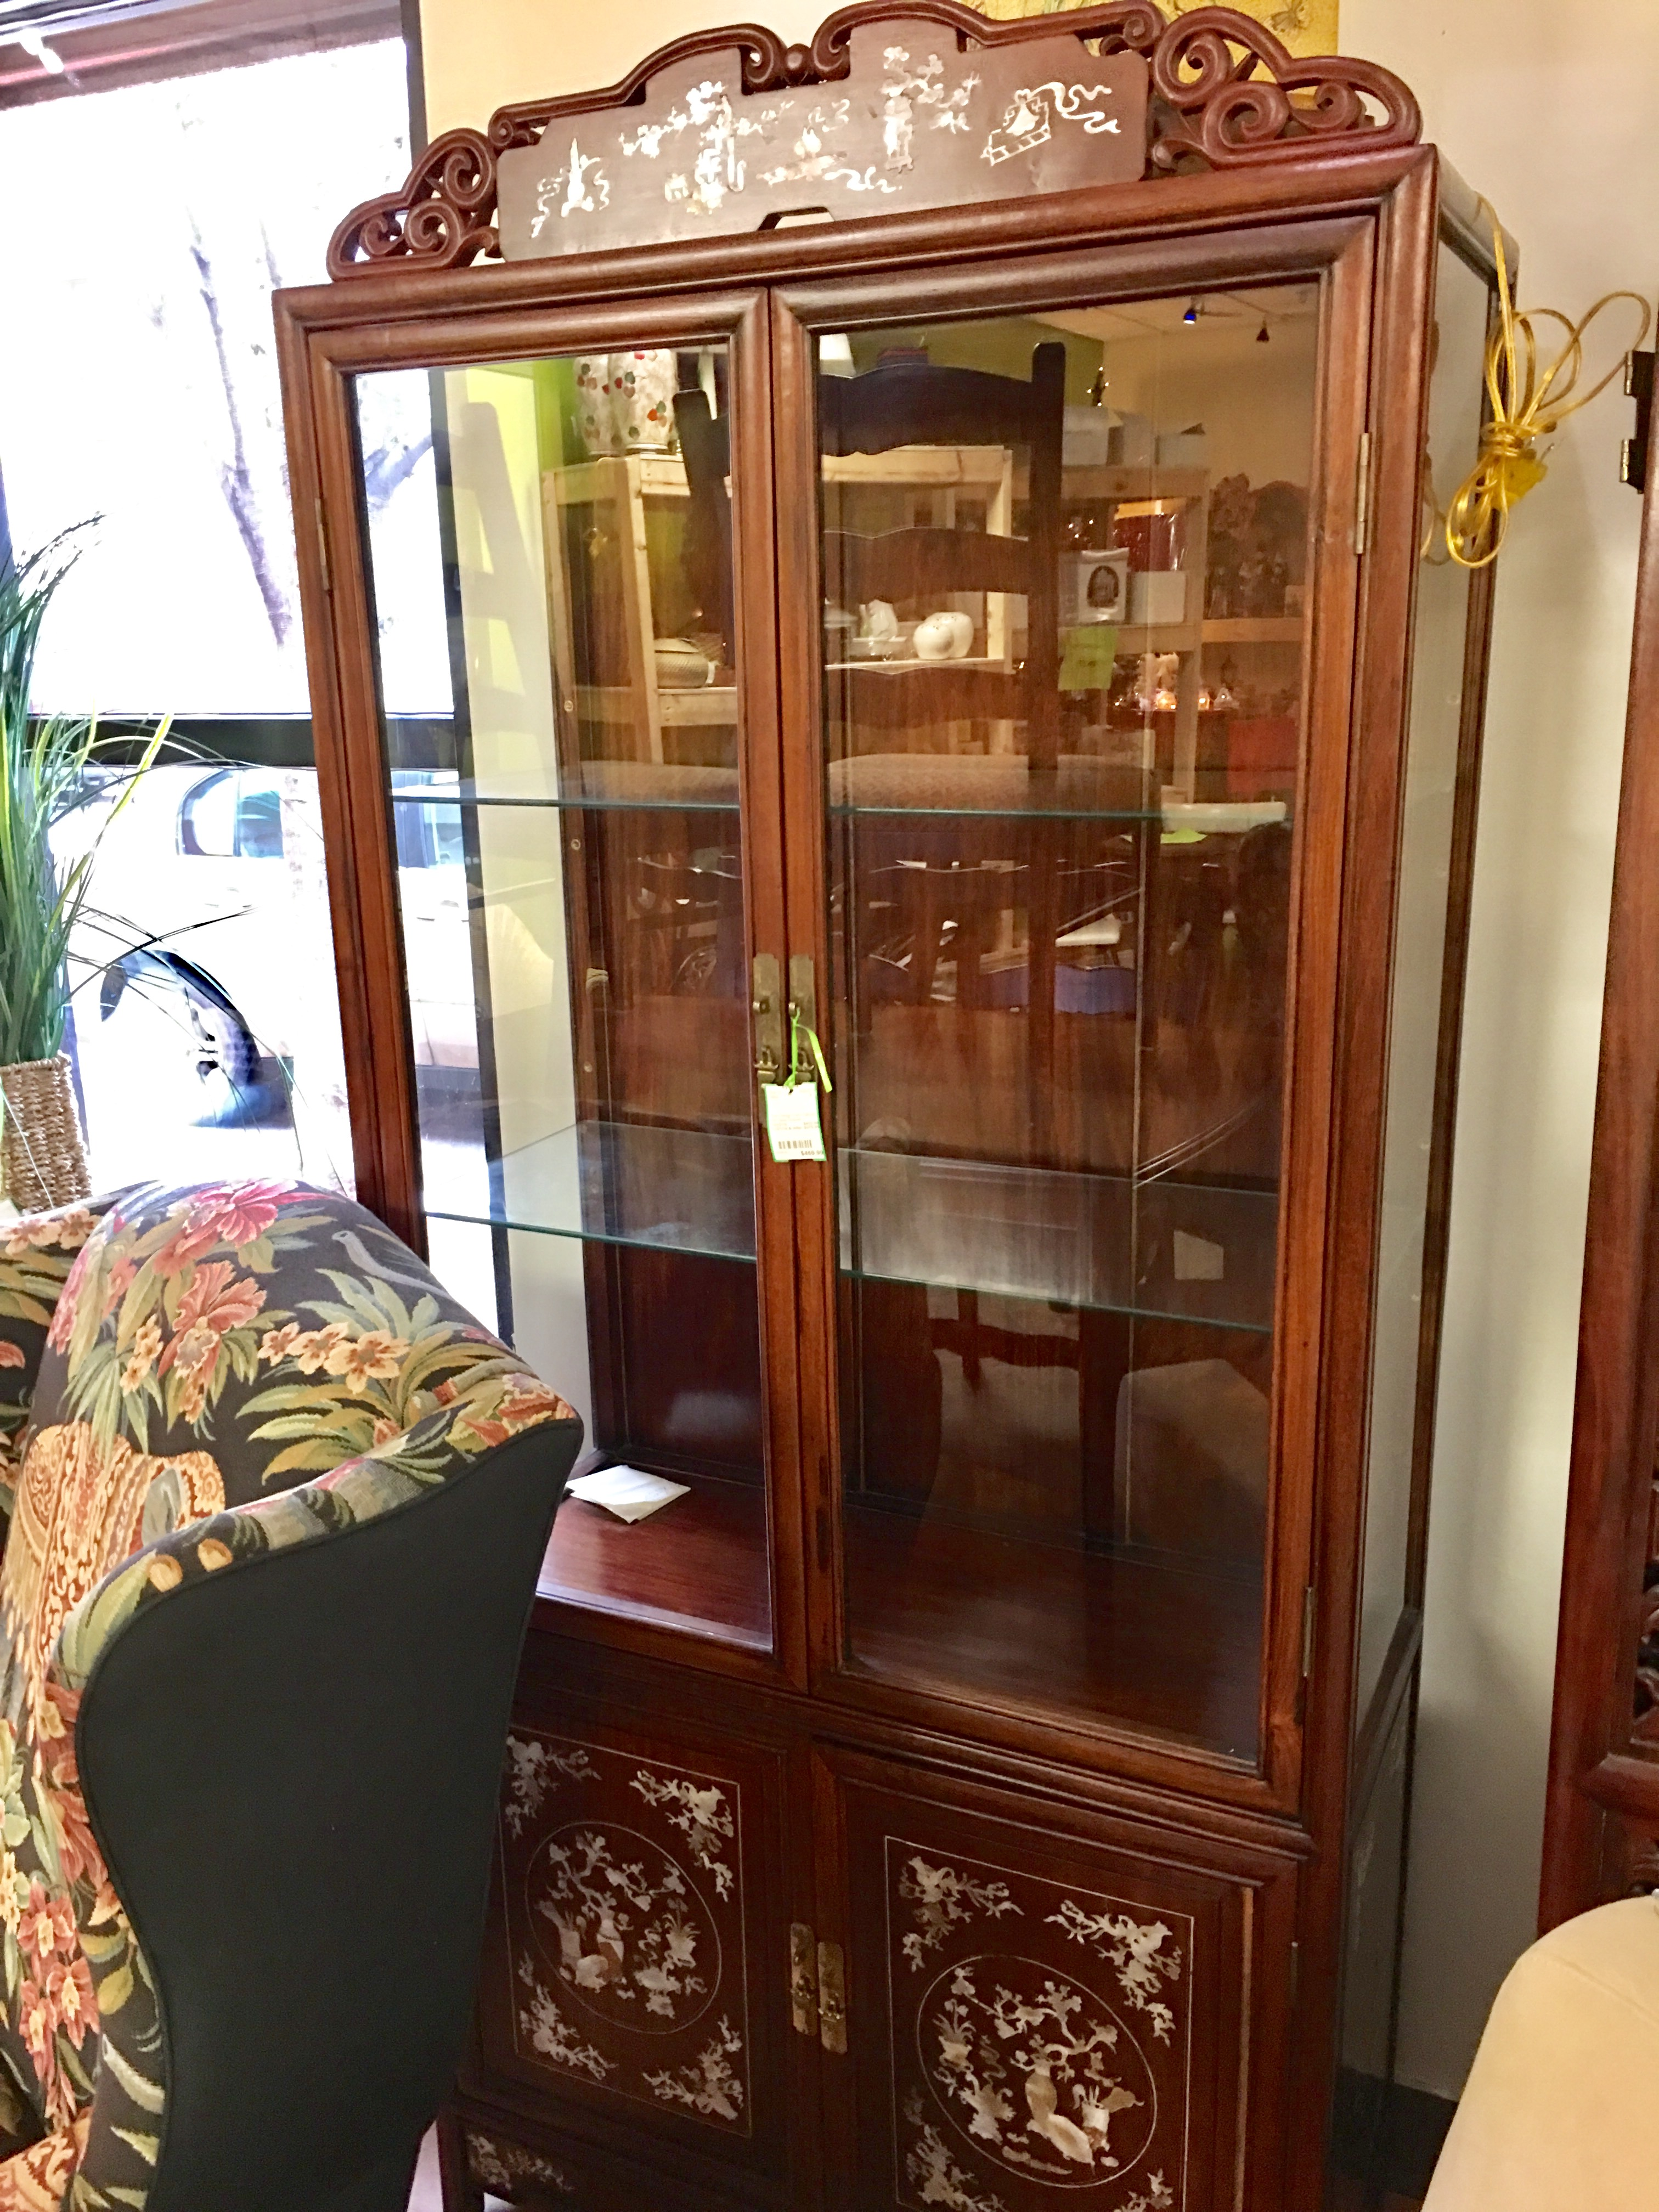 50 Off Eyedia Consignment Furniture Sale China Hutch